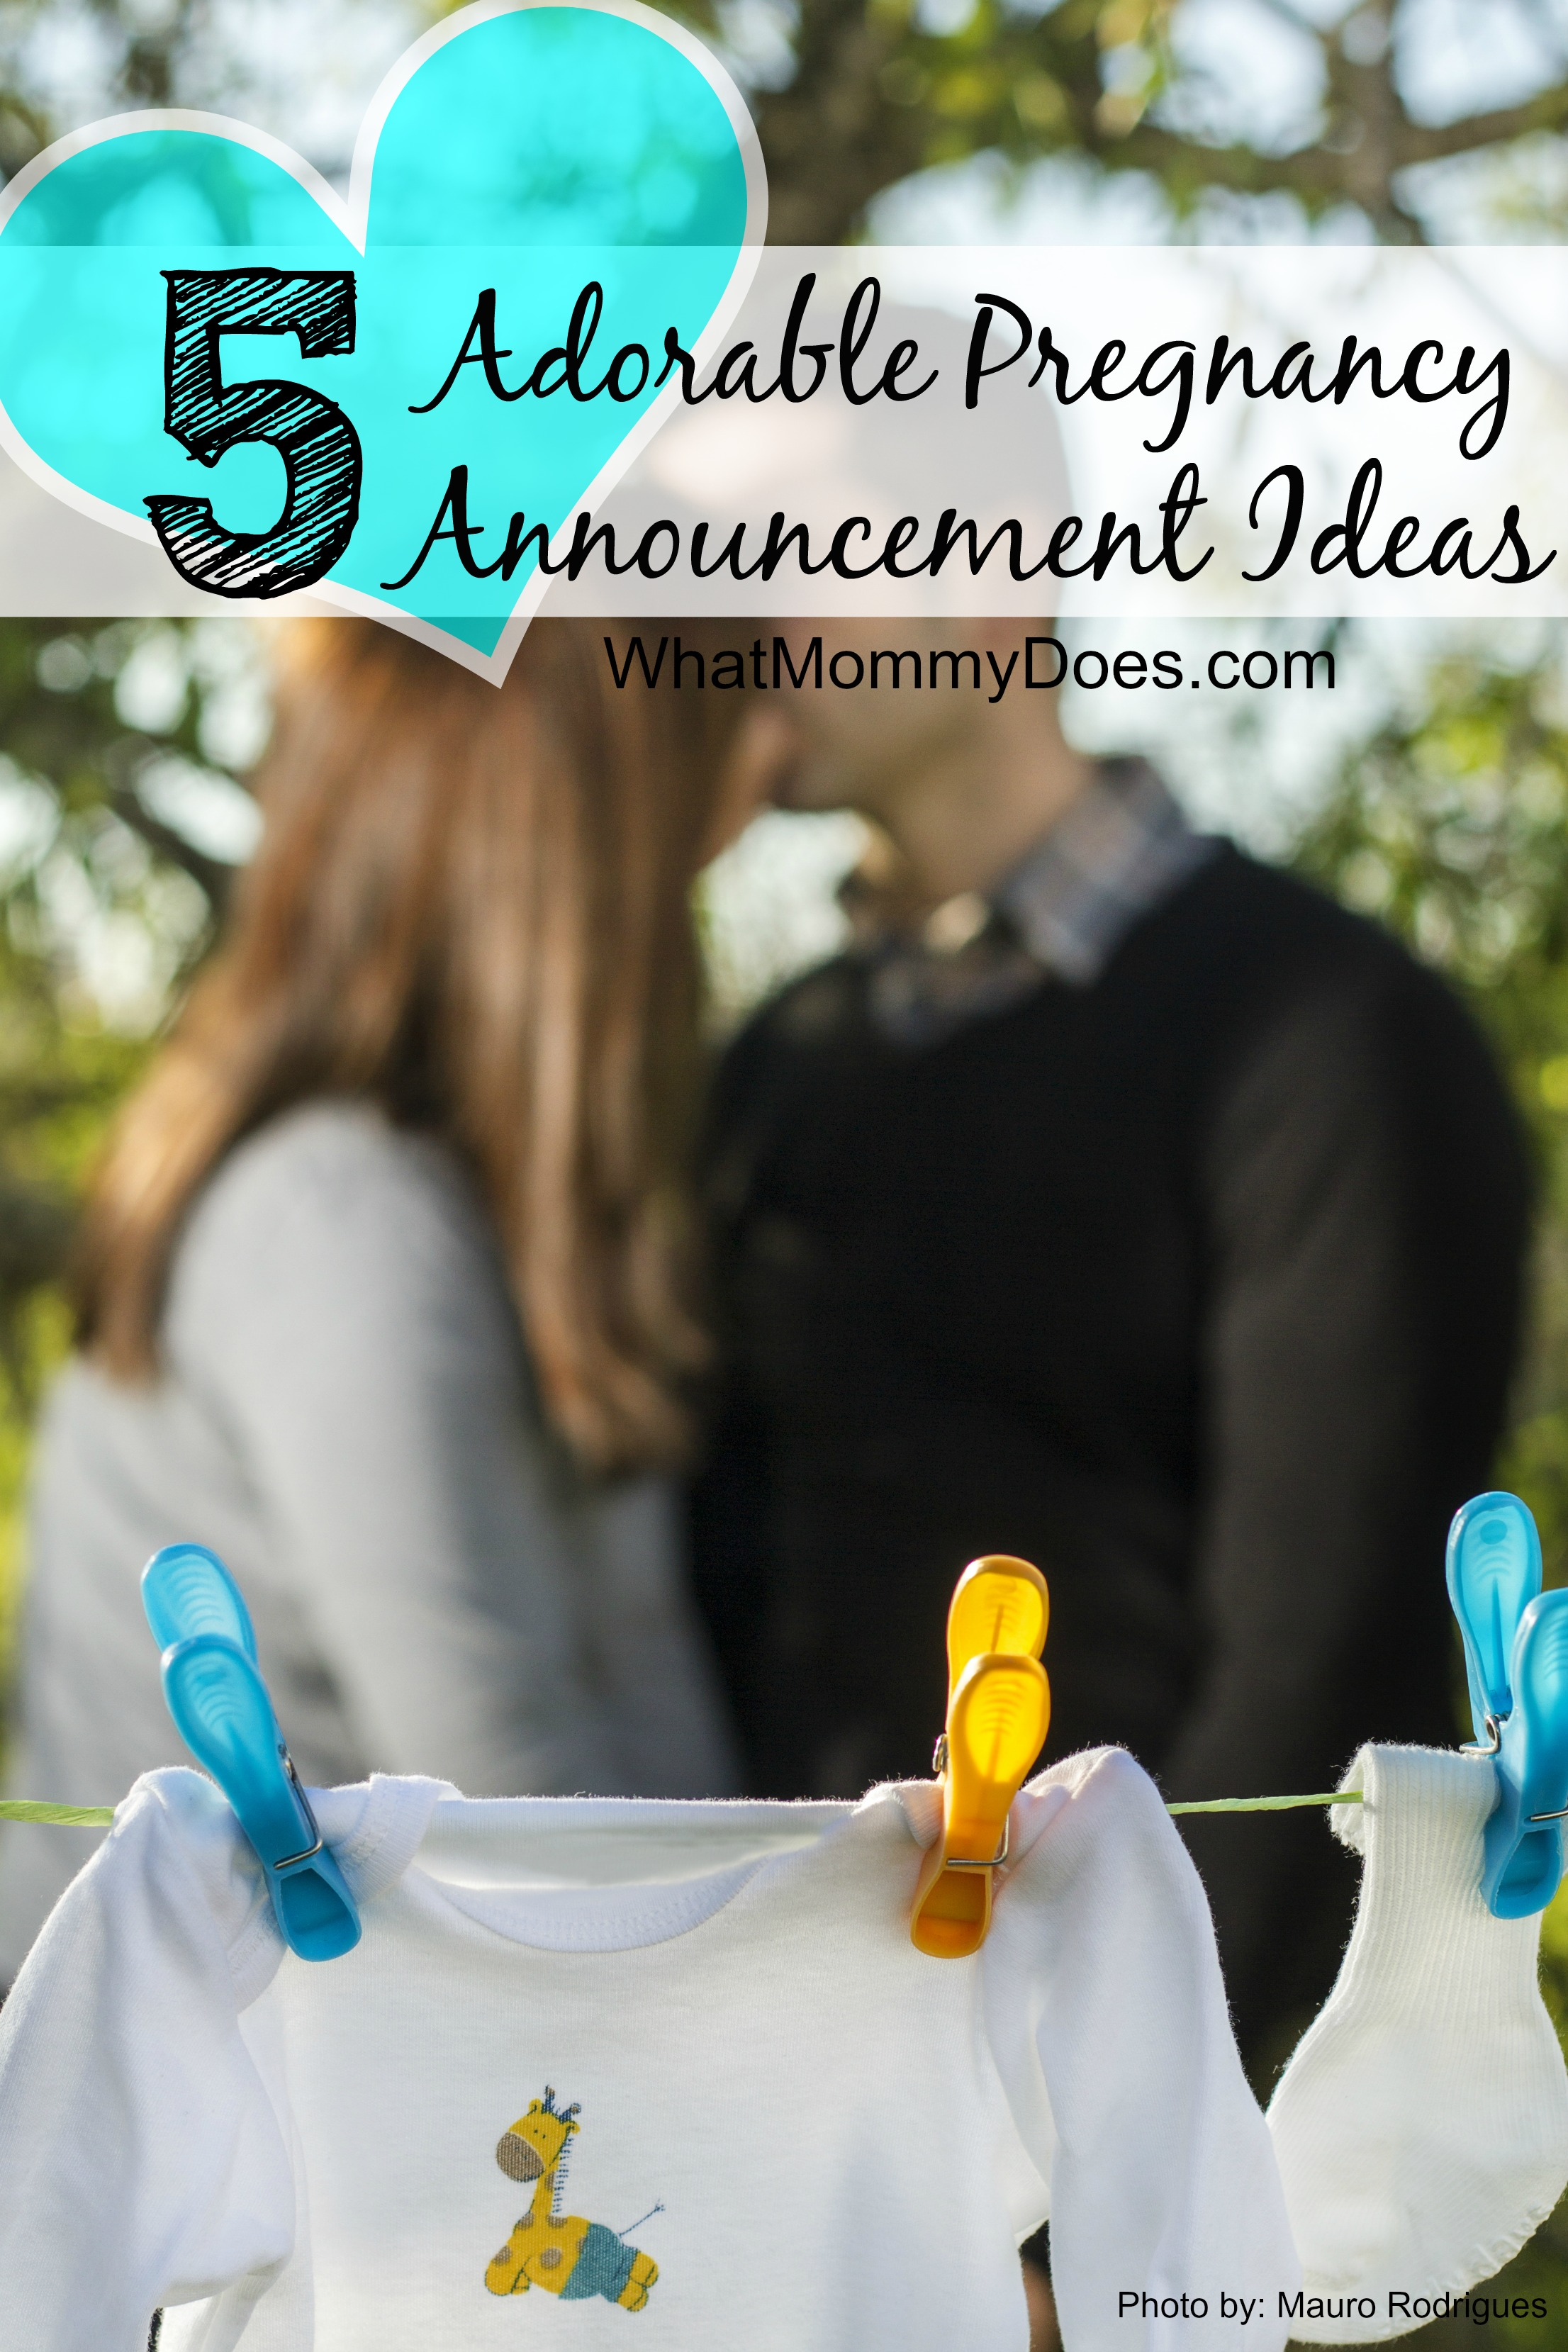 5 Adorable Pregnancy Announcement Ideas What Mommy Does